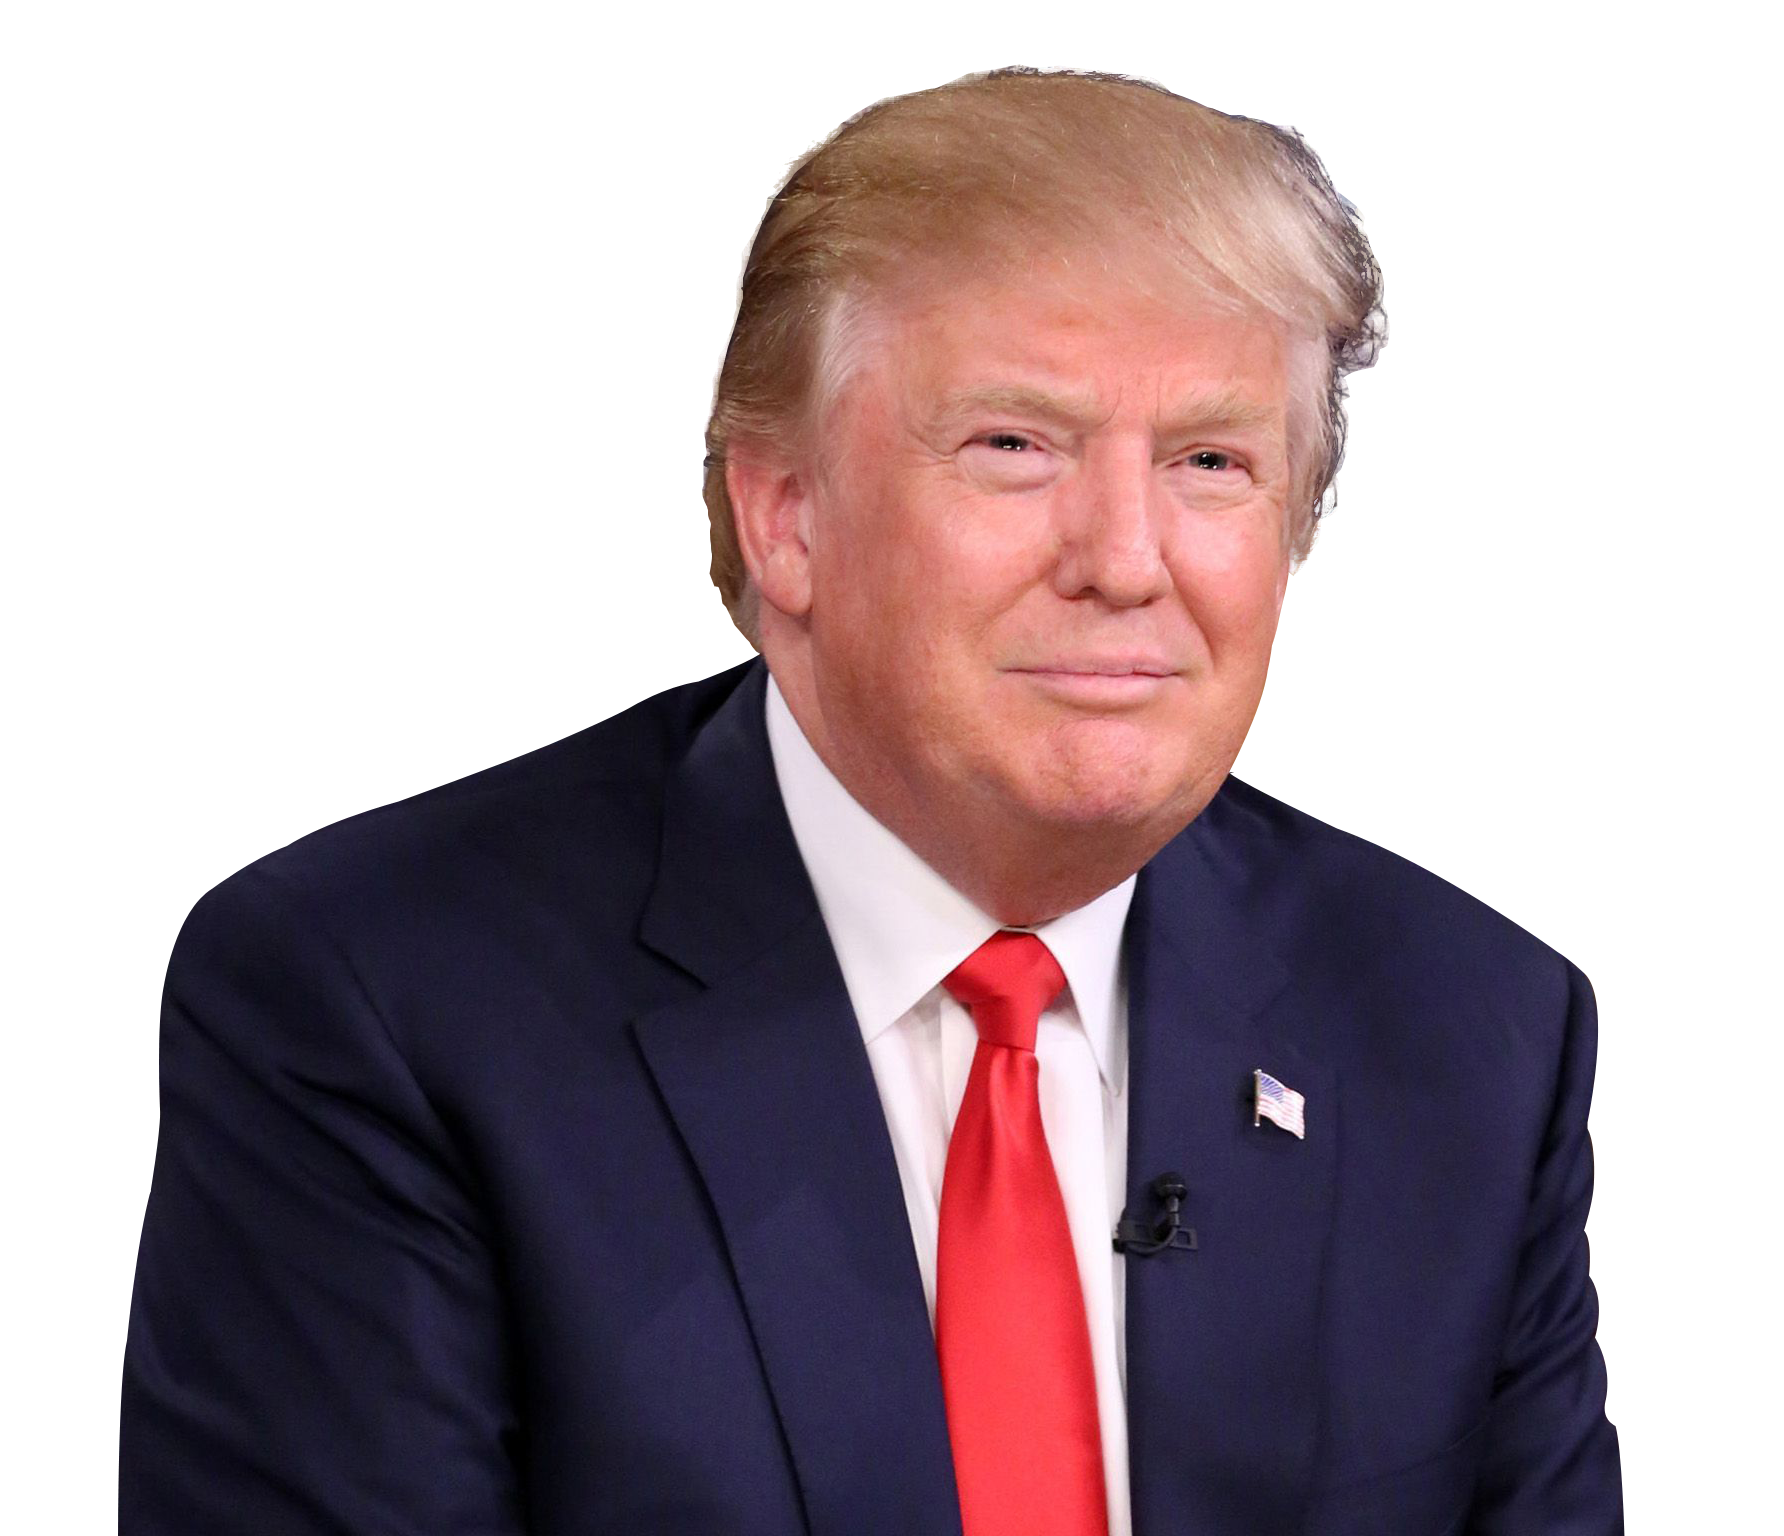 Free Download Of Donald Trump Icon Clipart image #38868